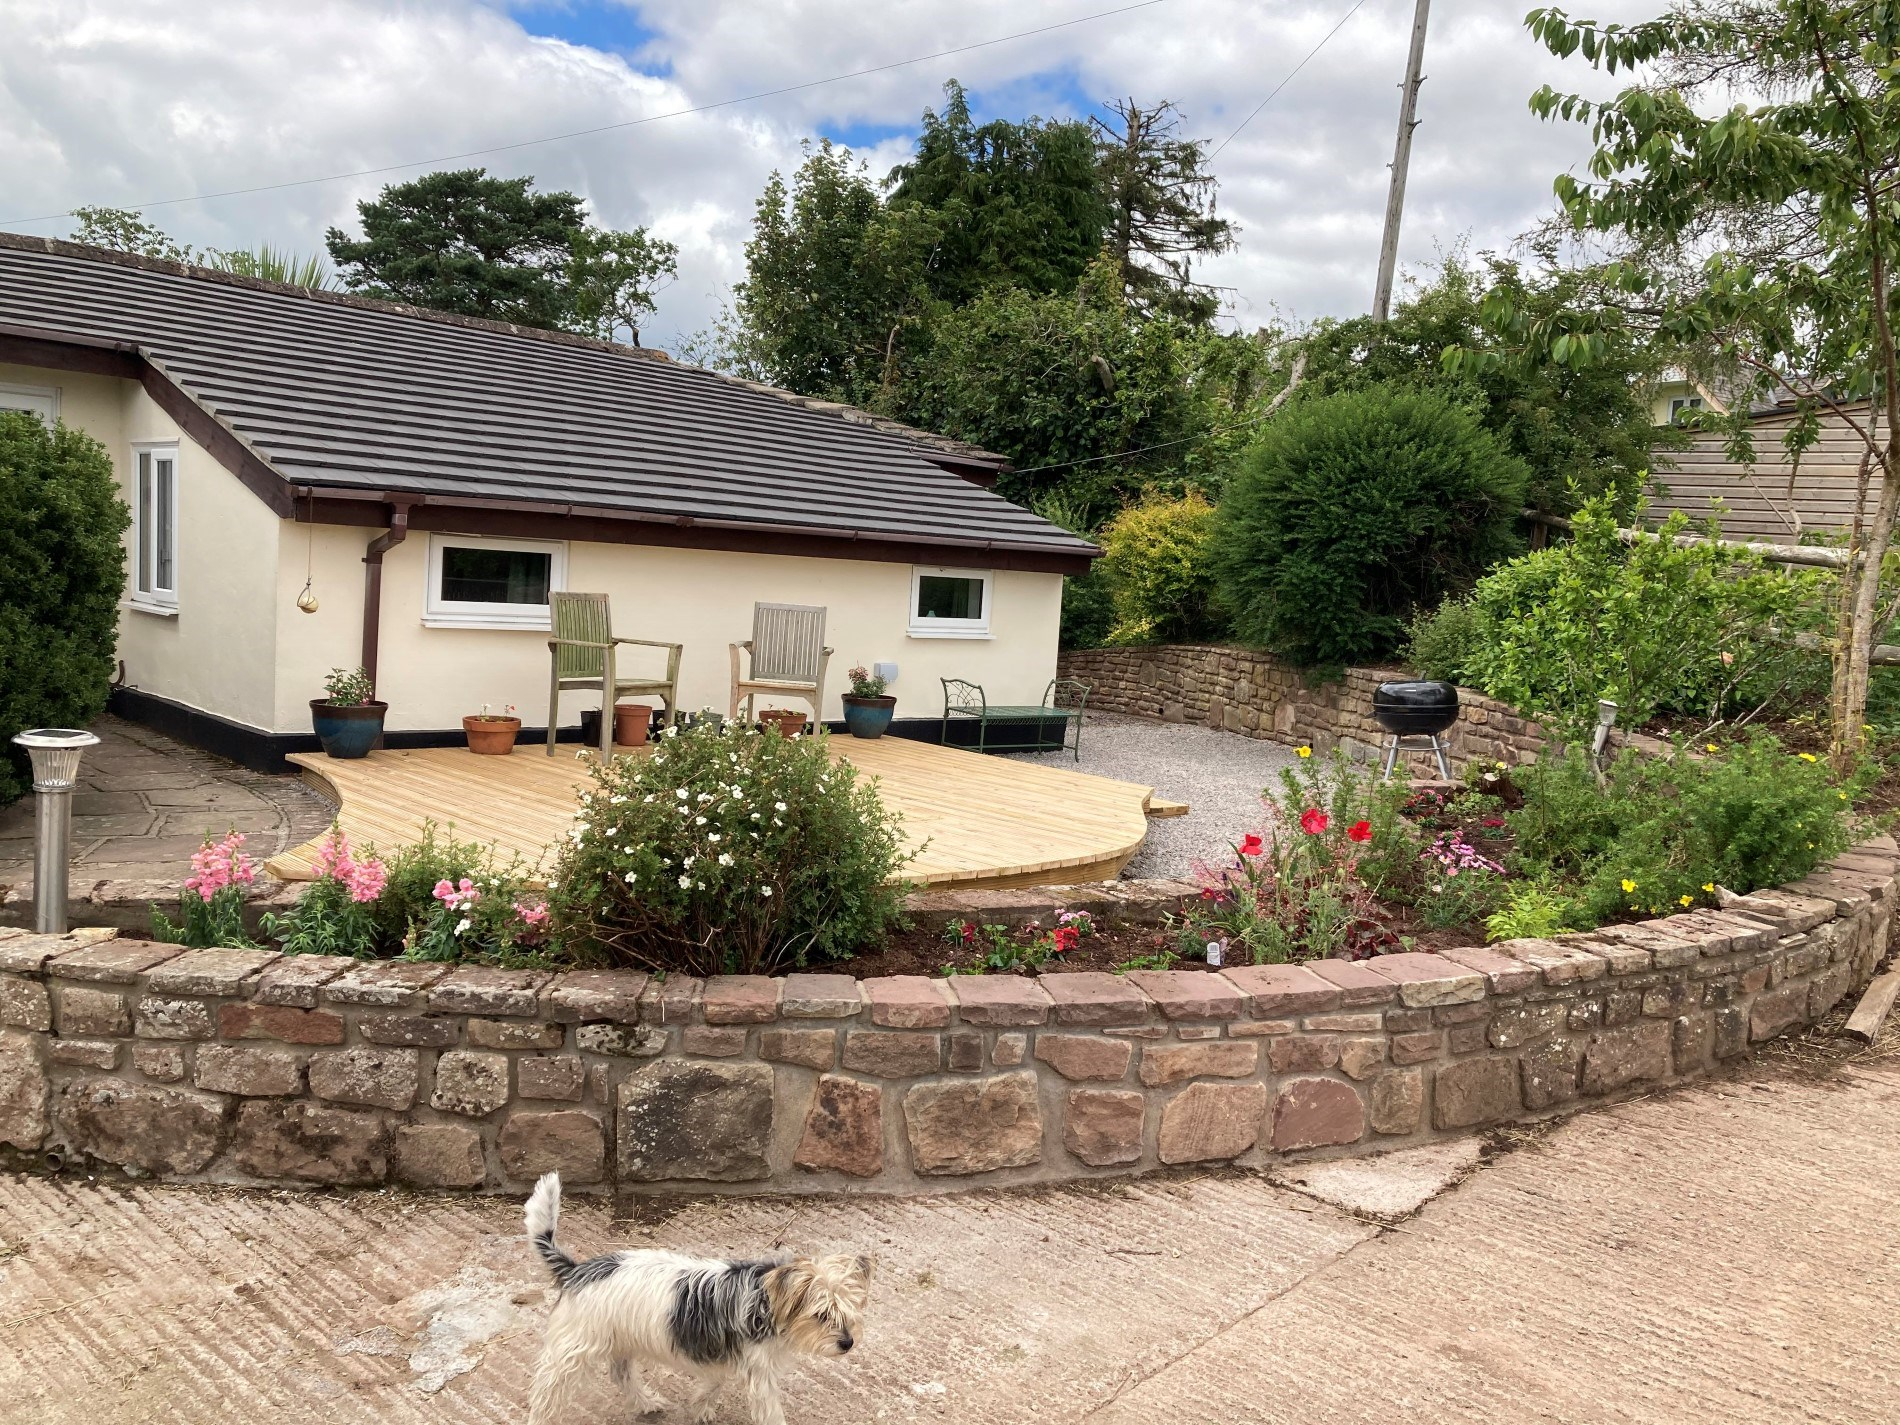 3 Bedroom Cottage in Monmouth, Heart of England